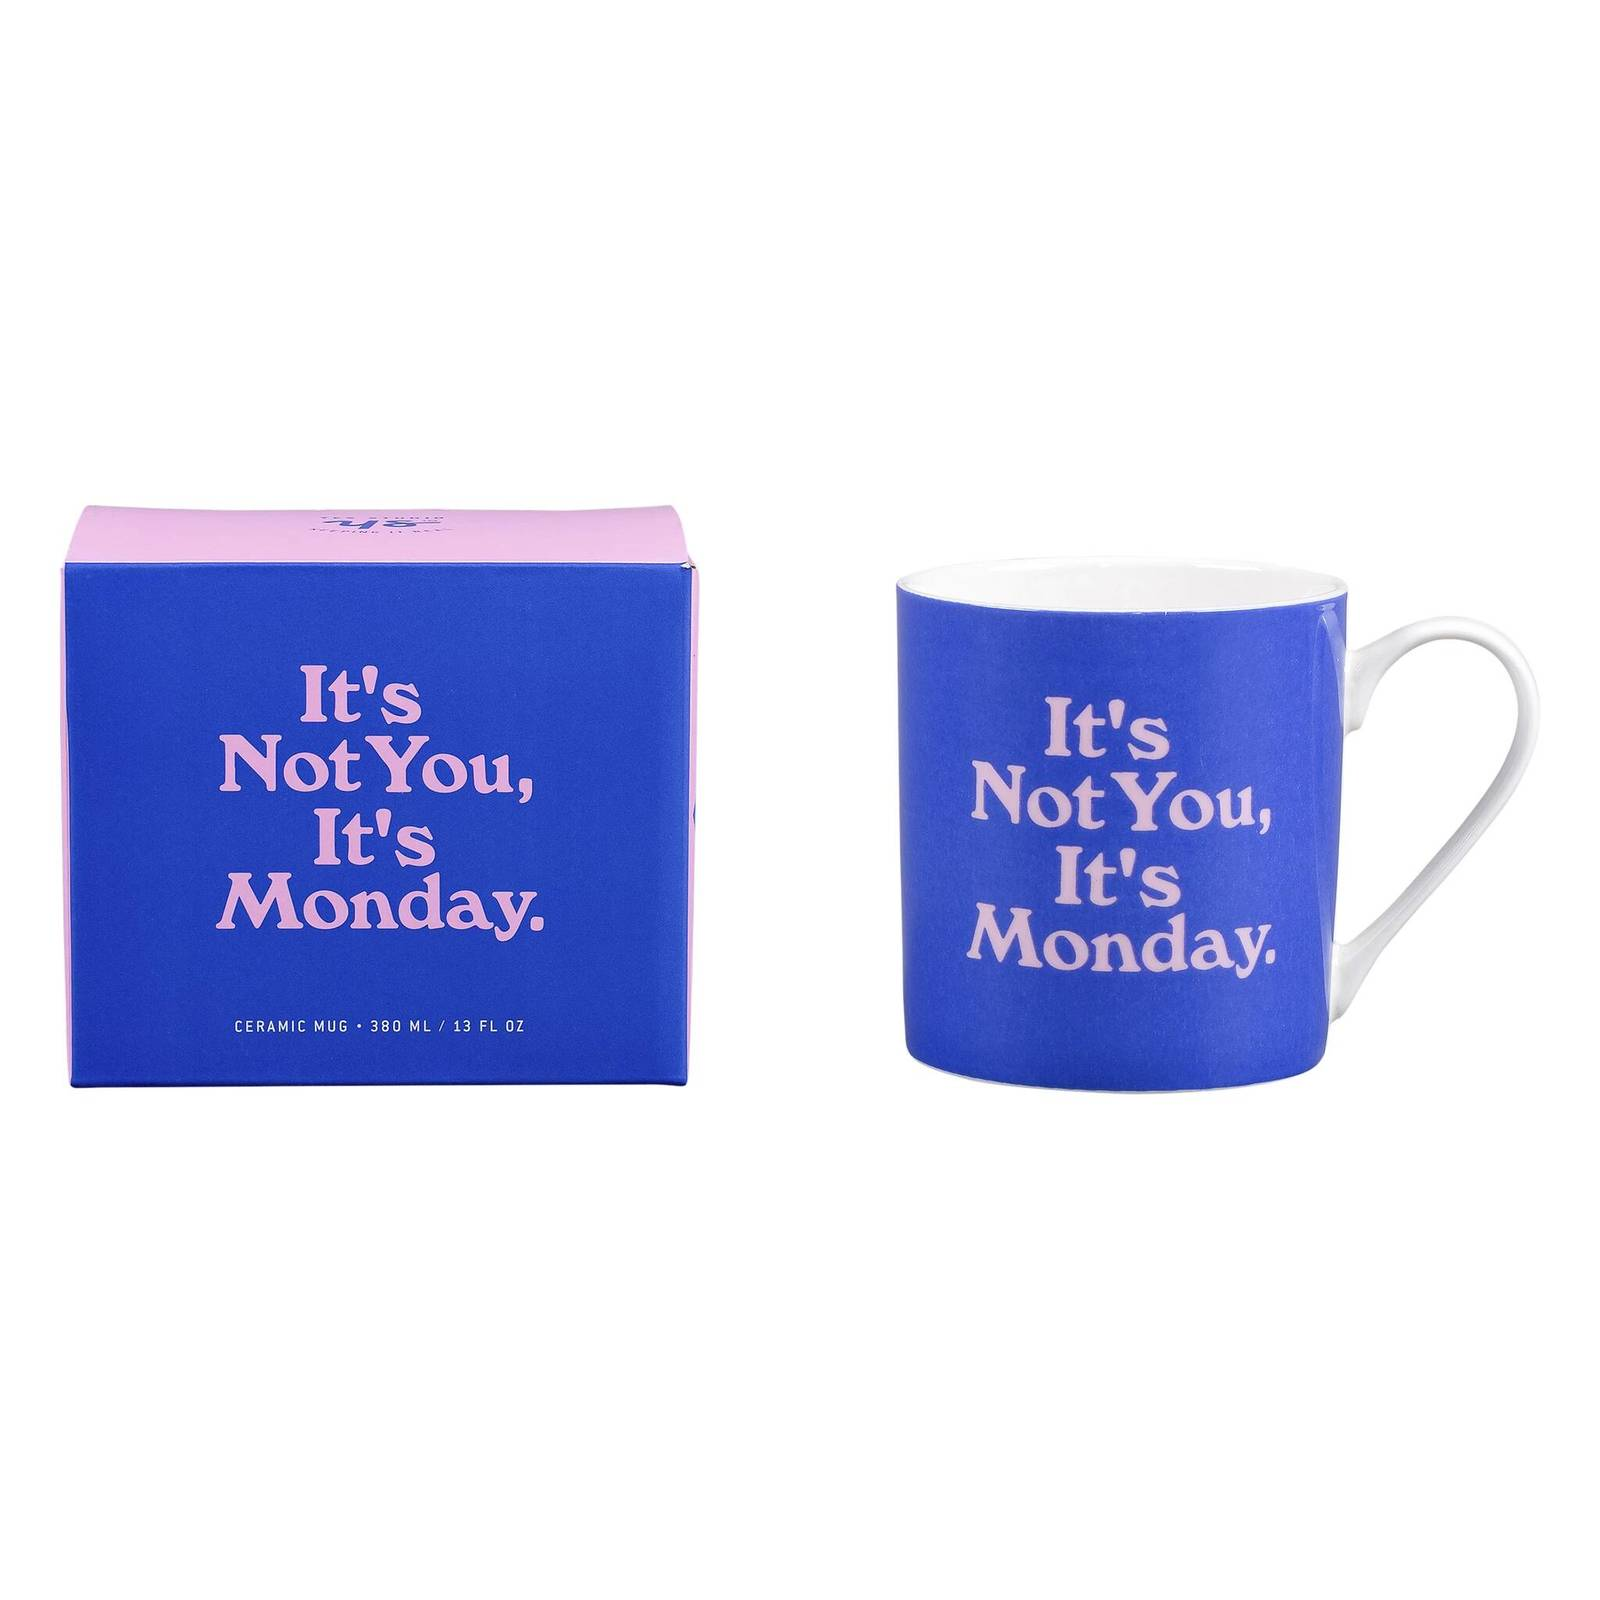 Yes Studio: Ceramic Mug - Its Not You